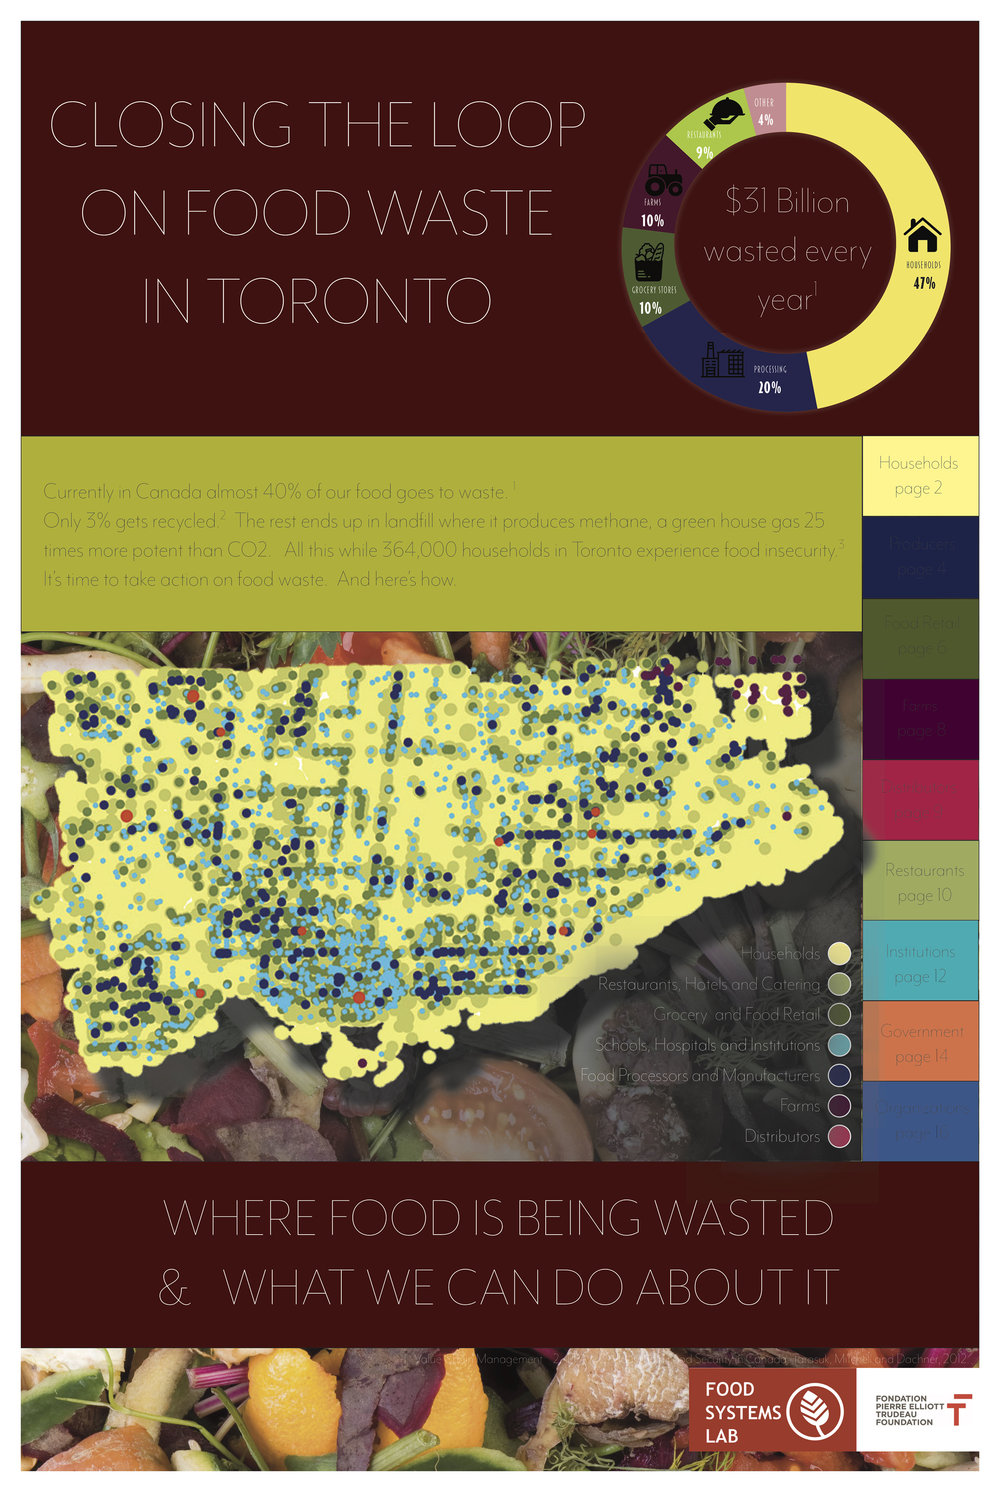 Guide to Reducing Food Waste in Toronto